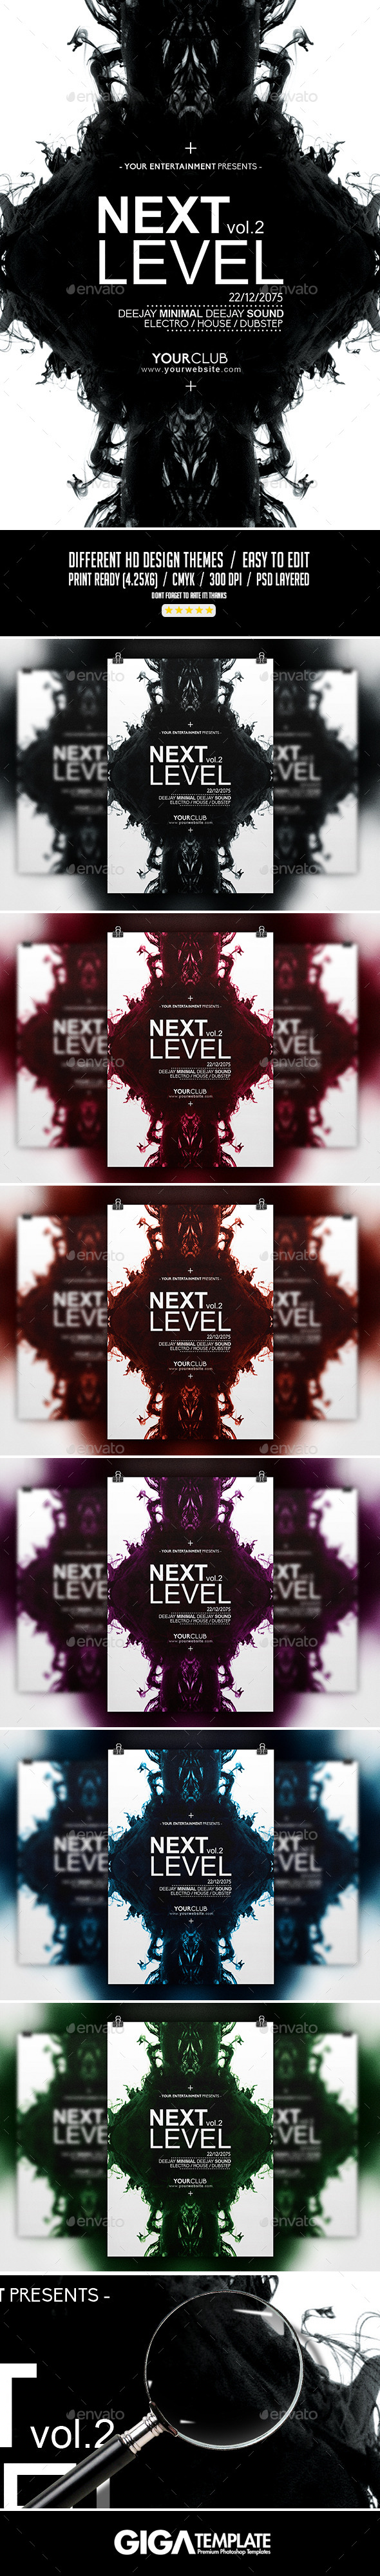 Next Level Vol.2 Minimalist Flyer PSD Template